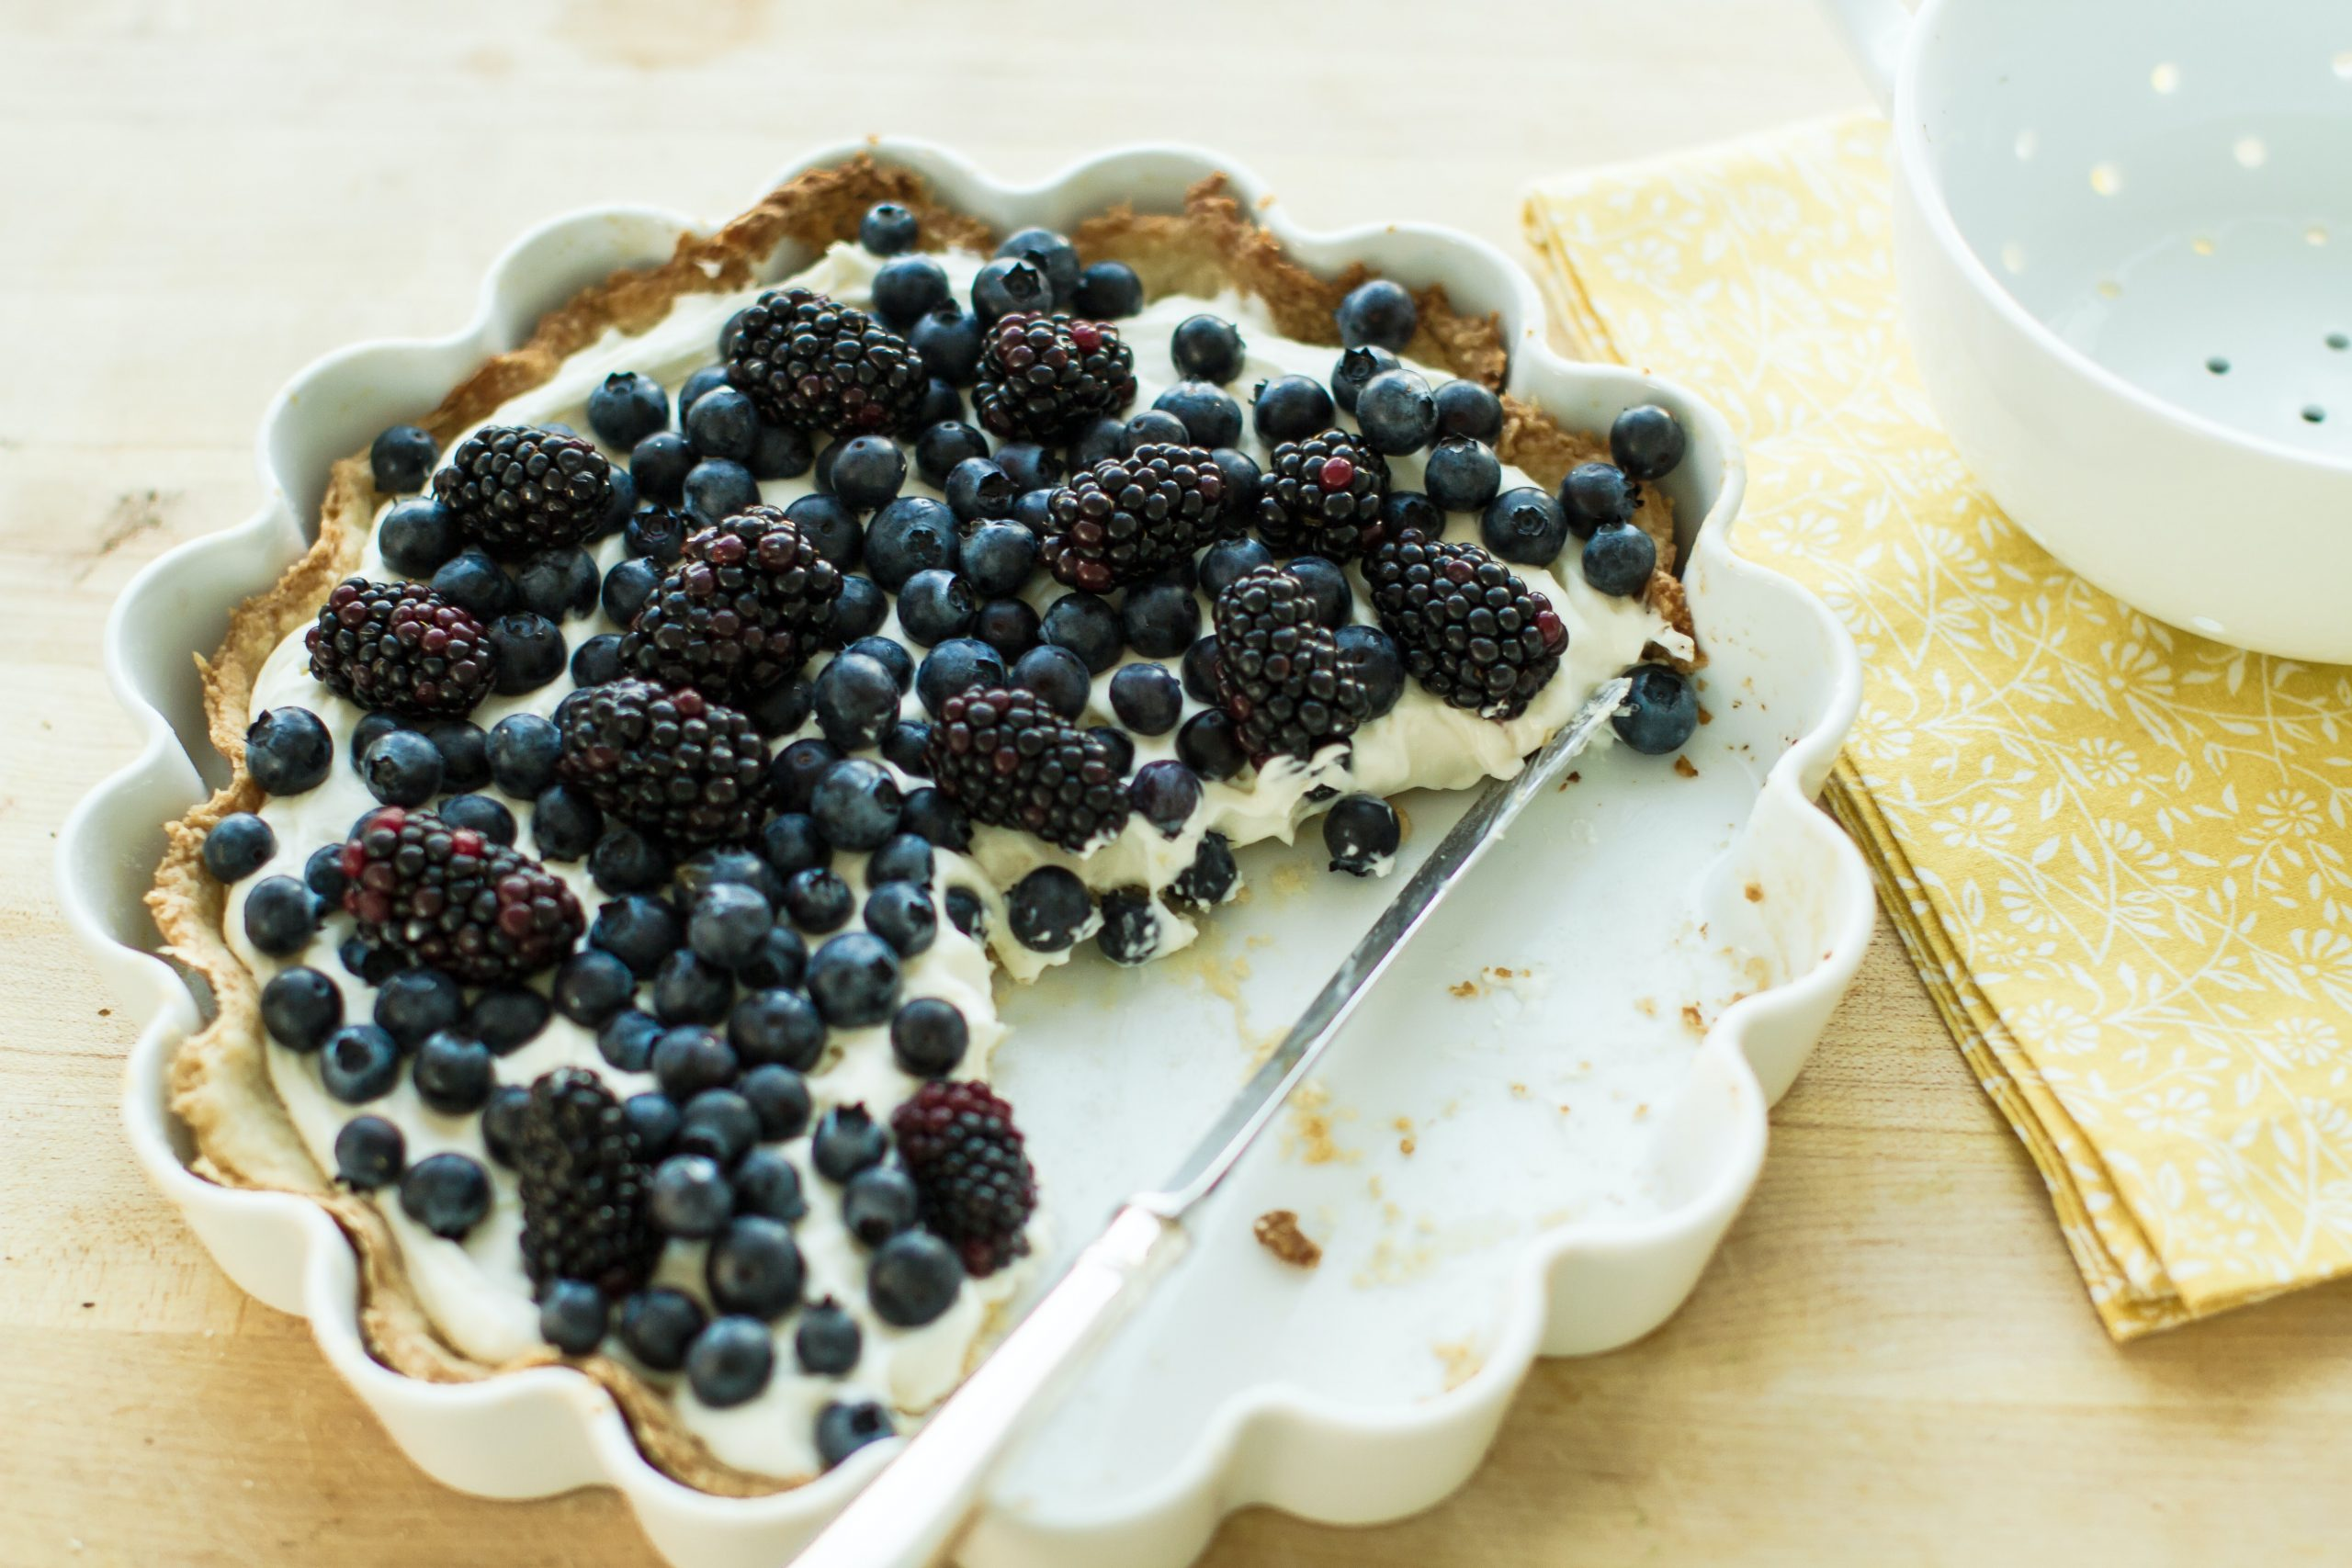 blueberry tart in a dish, with a piece missing; The World Of Cooking Is Magical, A You Looking For A New Career